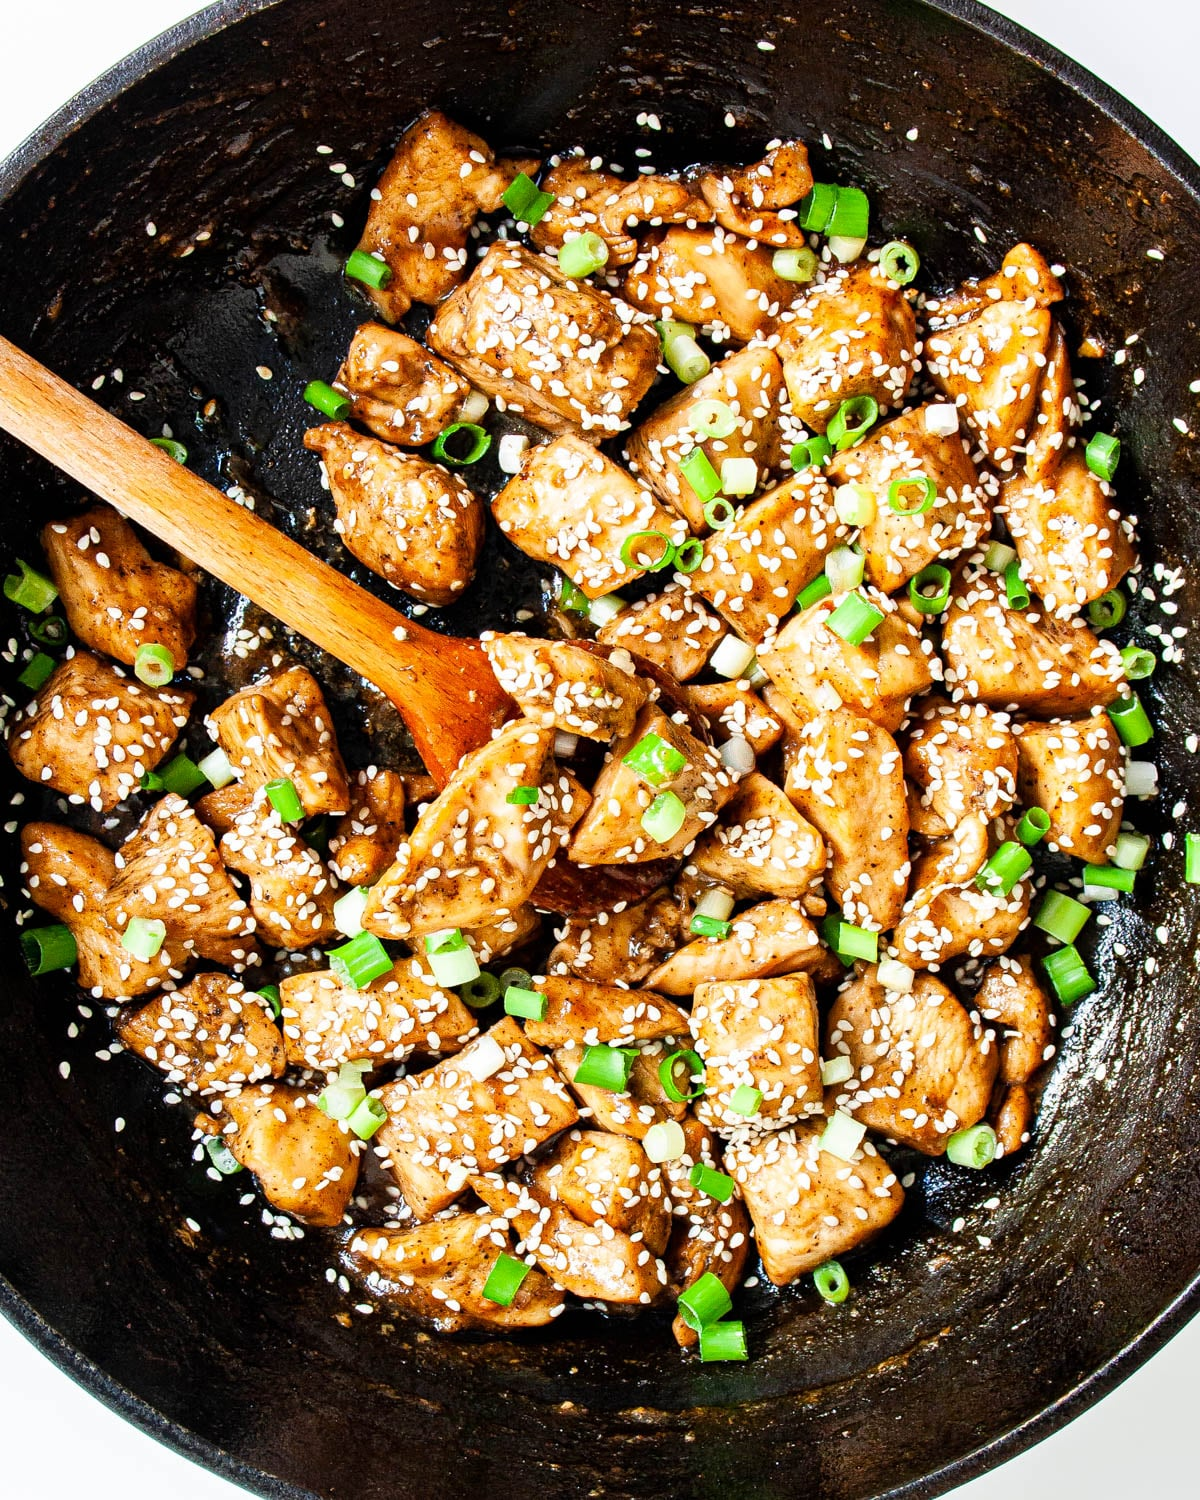 chicken teriyaki in a skillet garnished with sesame seeds and green onions